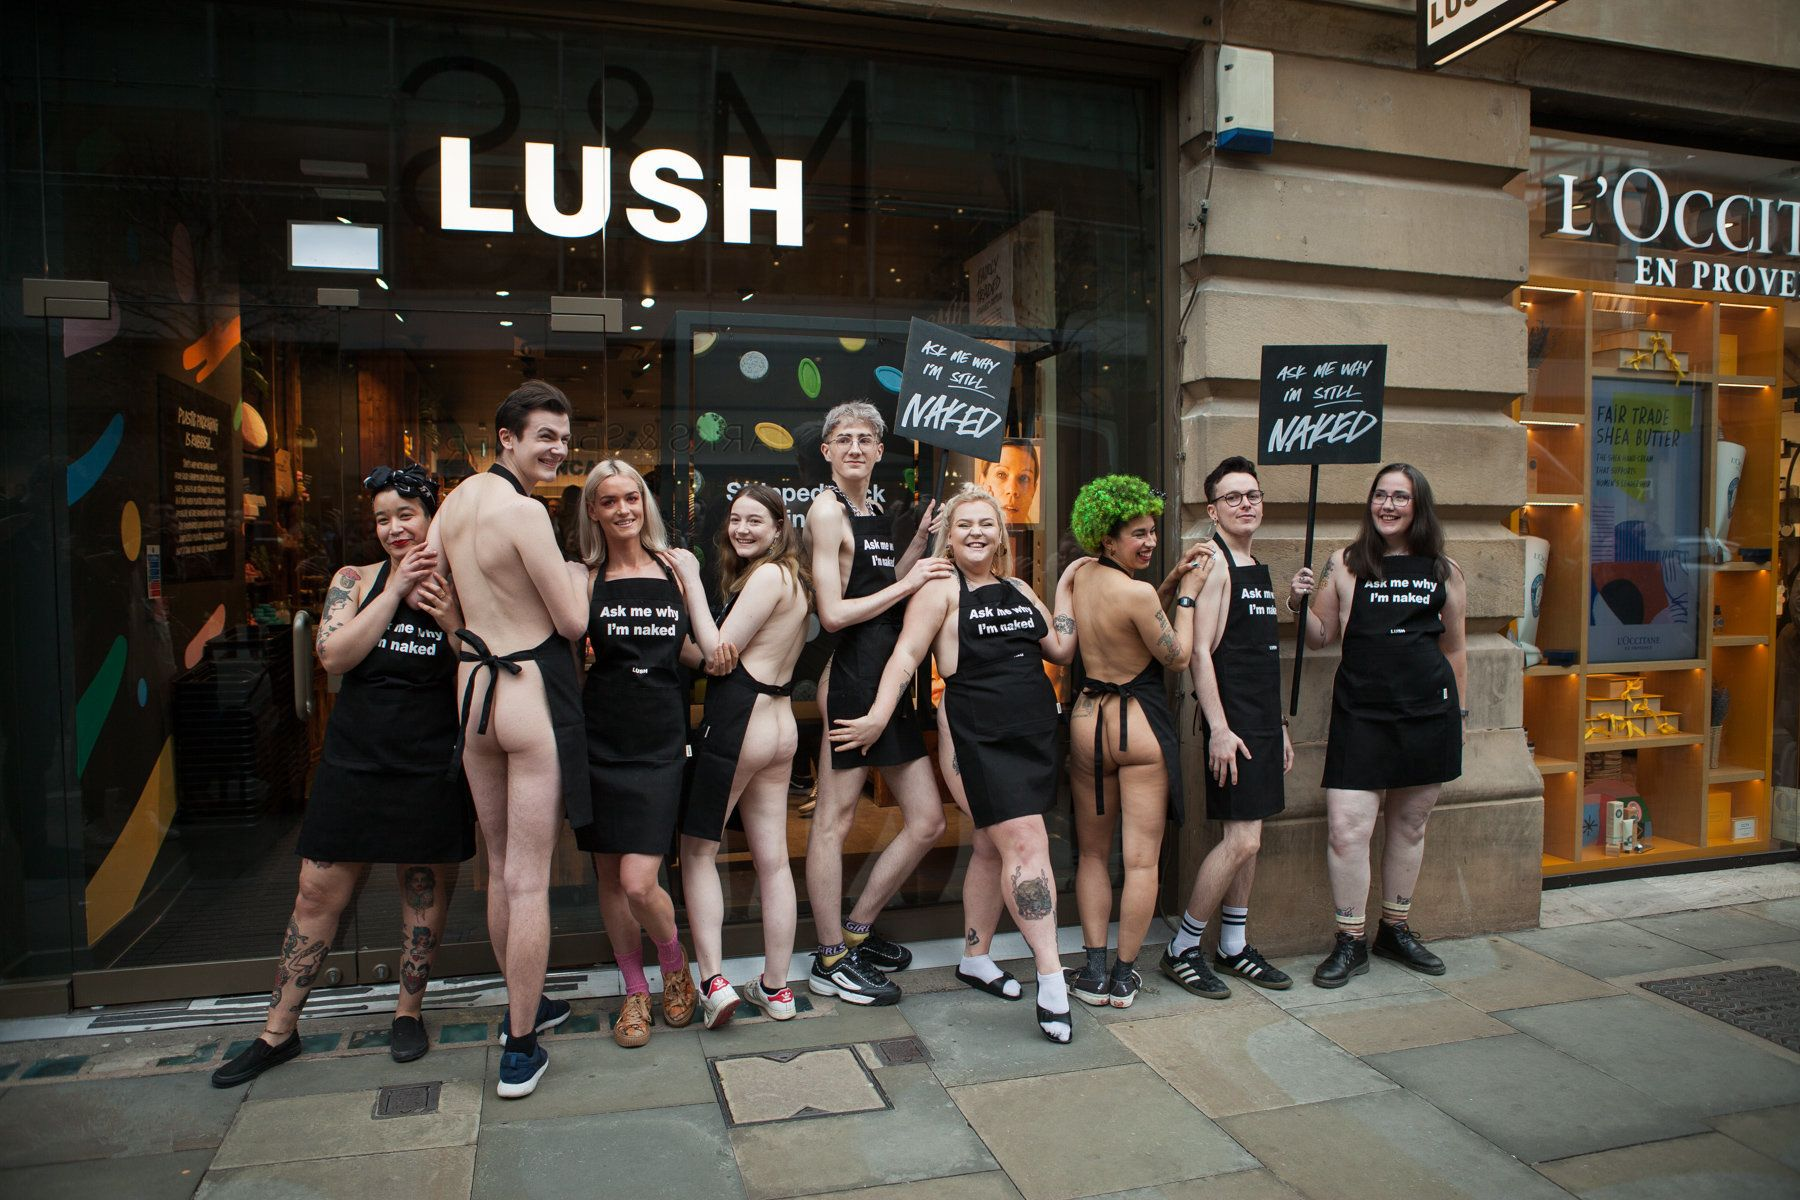 HUFFPOST FINDS: Inside Lush's First UK Plastic-Free Shop: From Naked Employees To Solid Shower